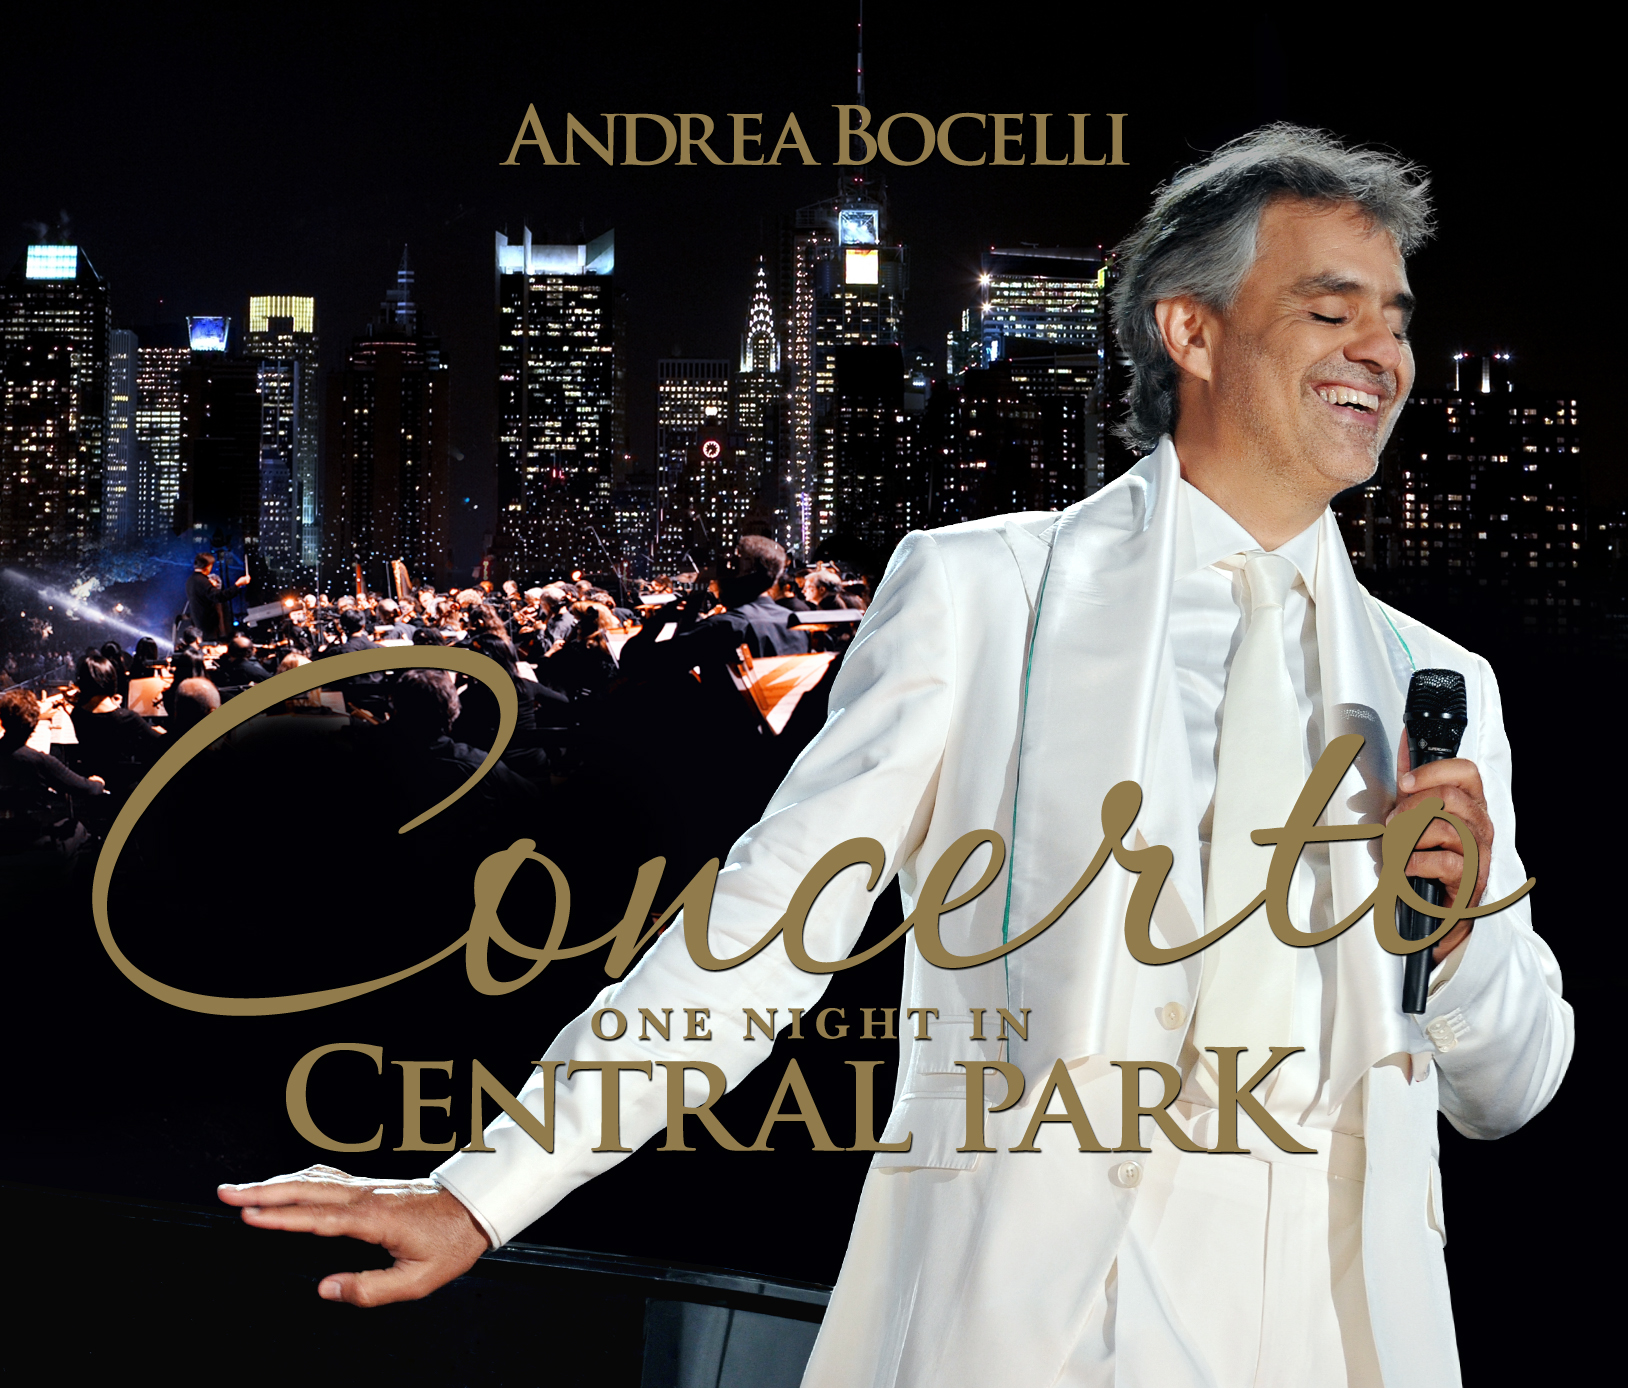 Andrea Bocelli on YouTube Music Videos